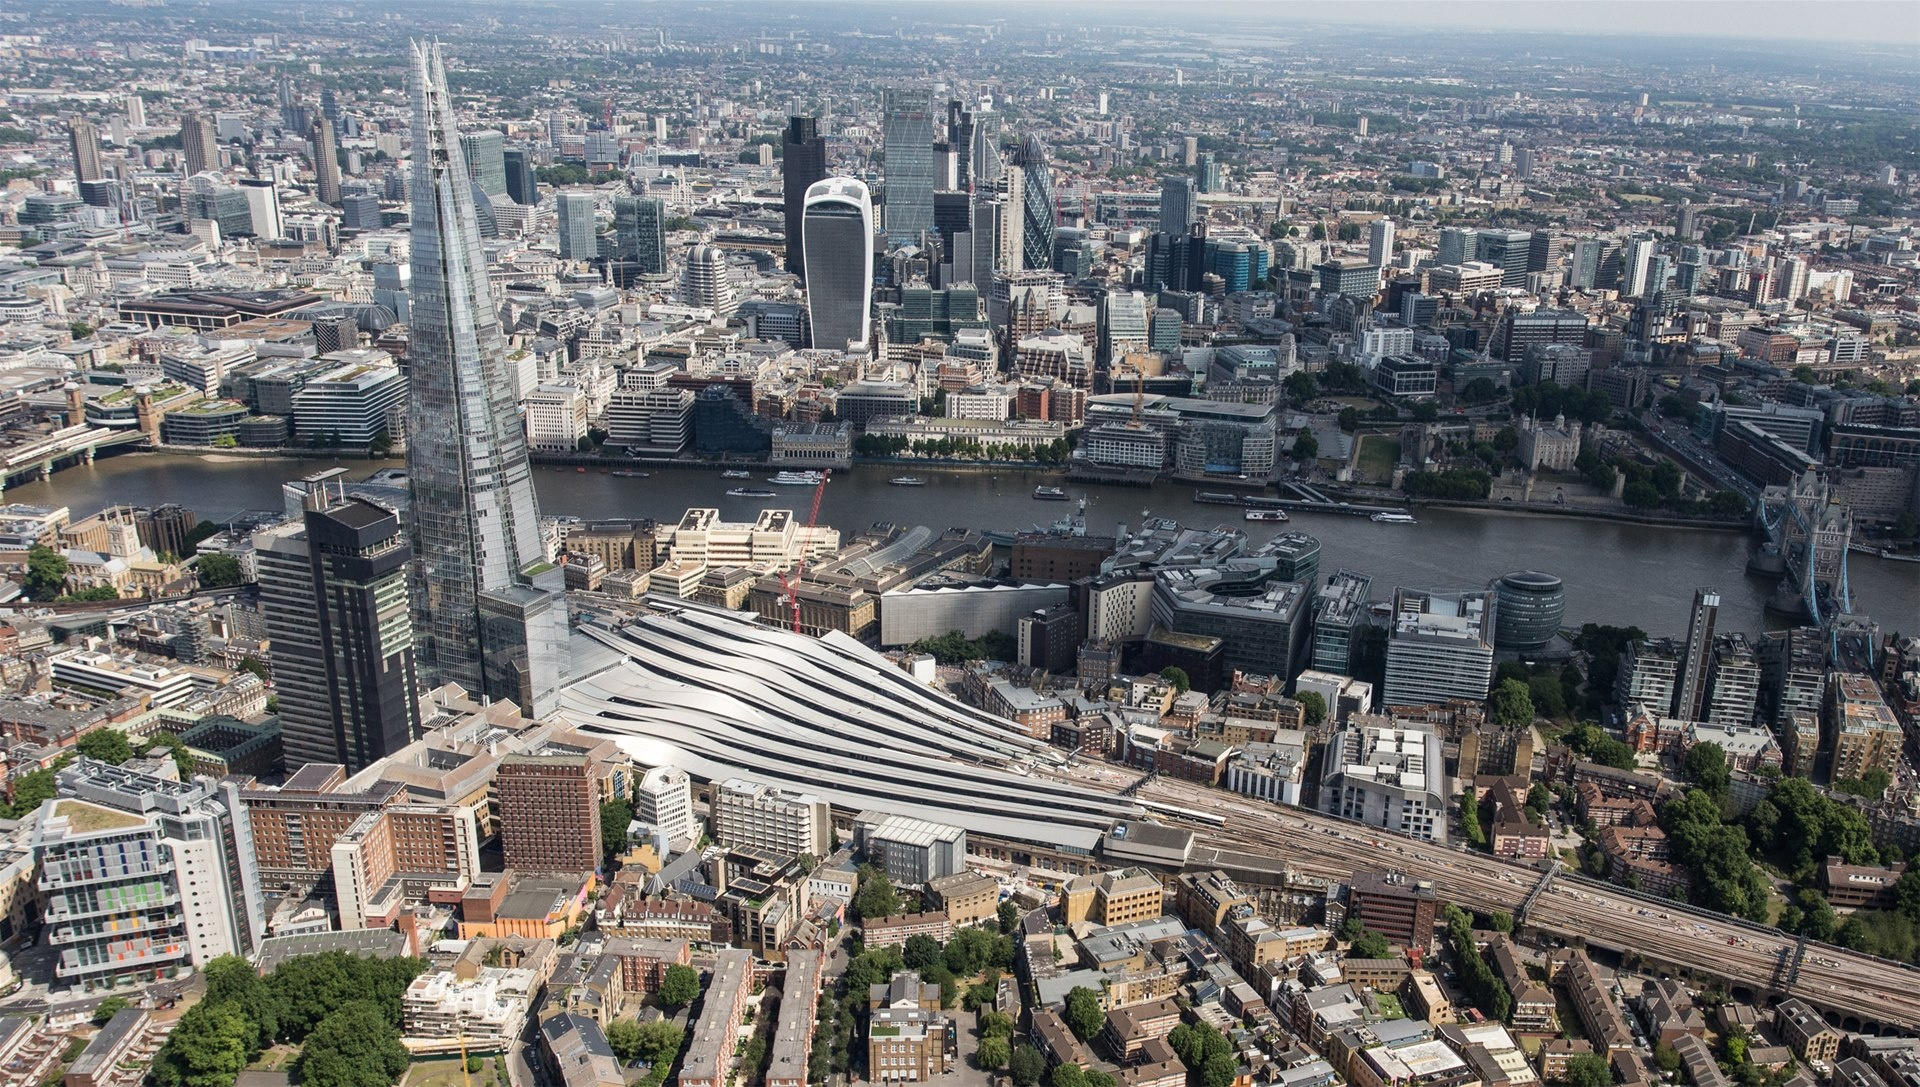 London Bridge station reopens with 5 new platforms added